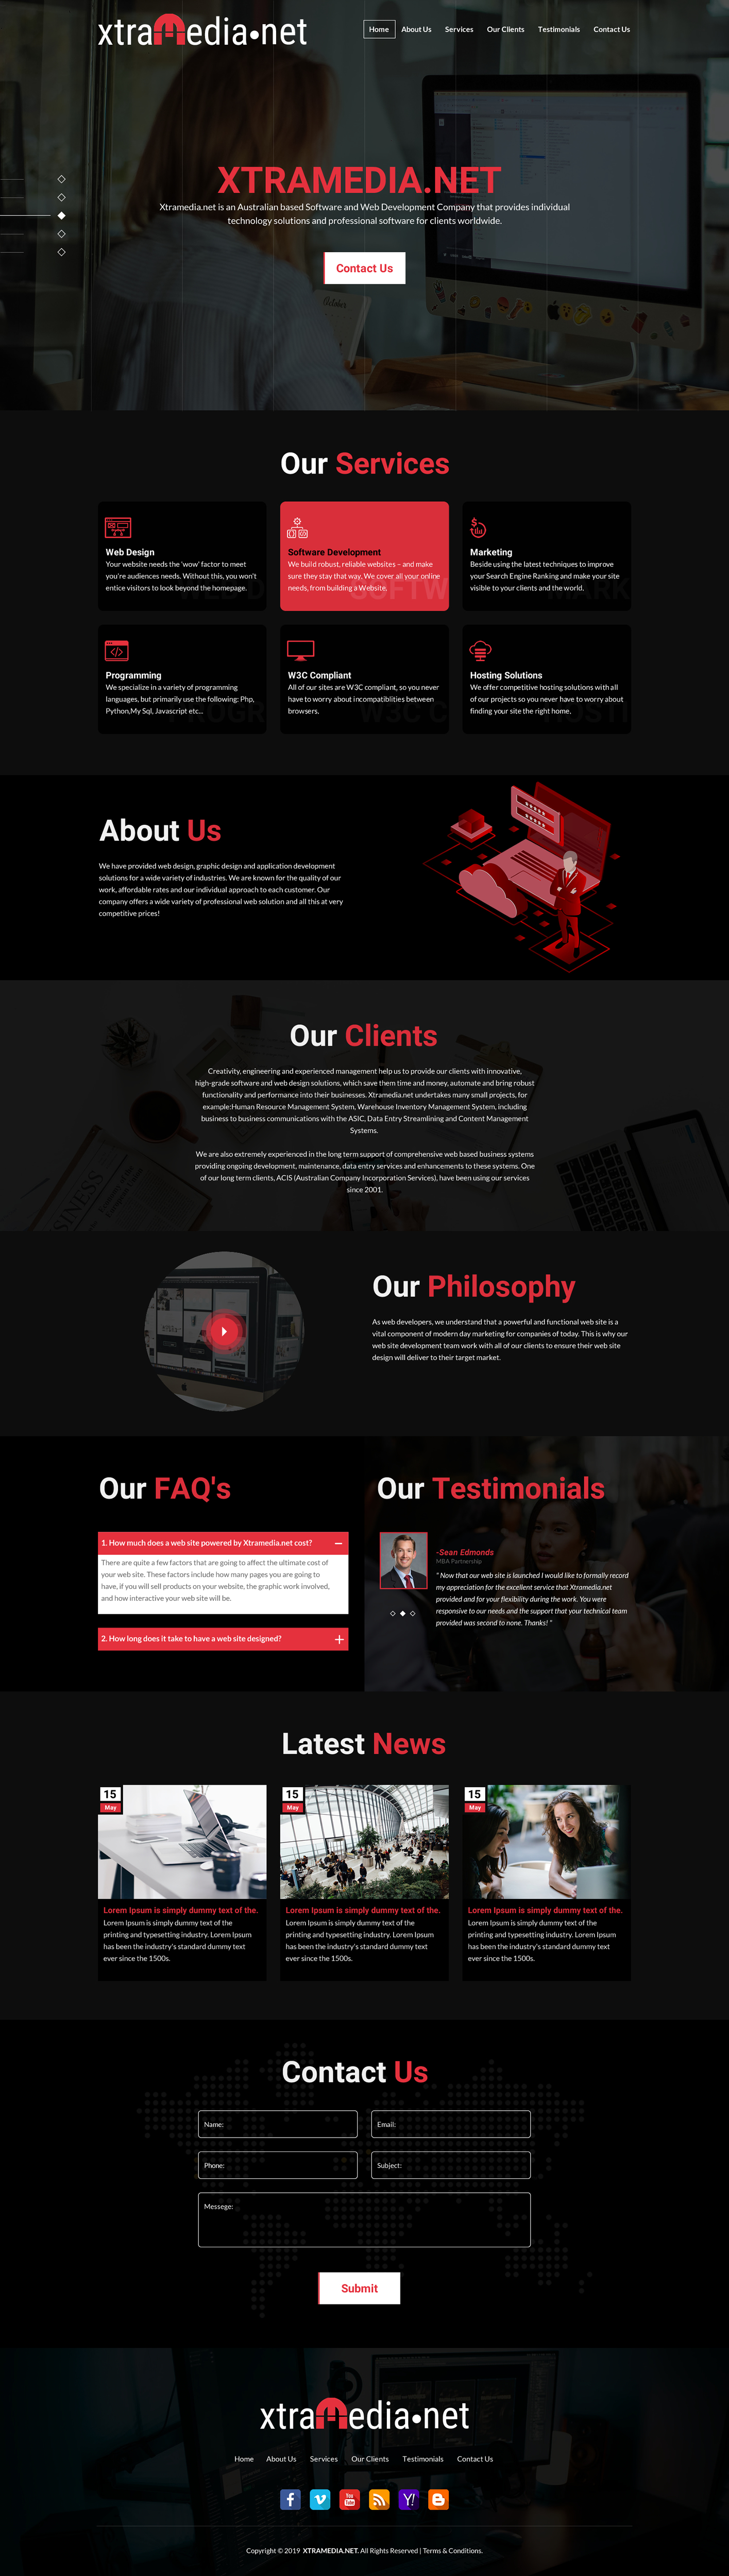 Modern, Professional, Business Software Web Design for a Company by